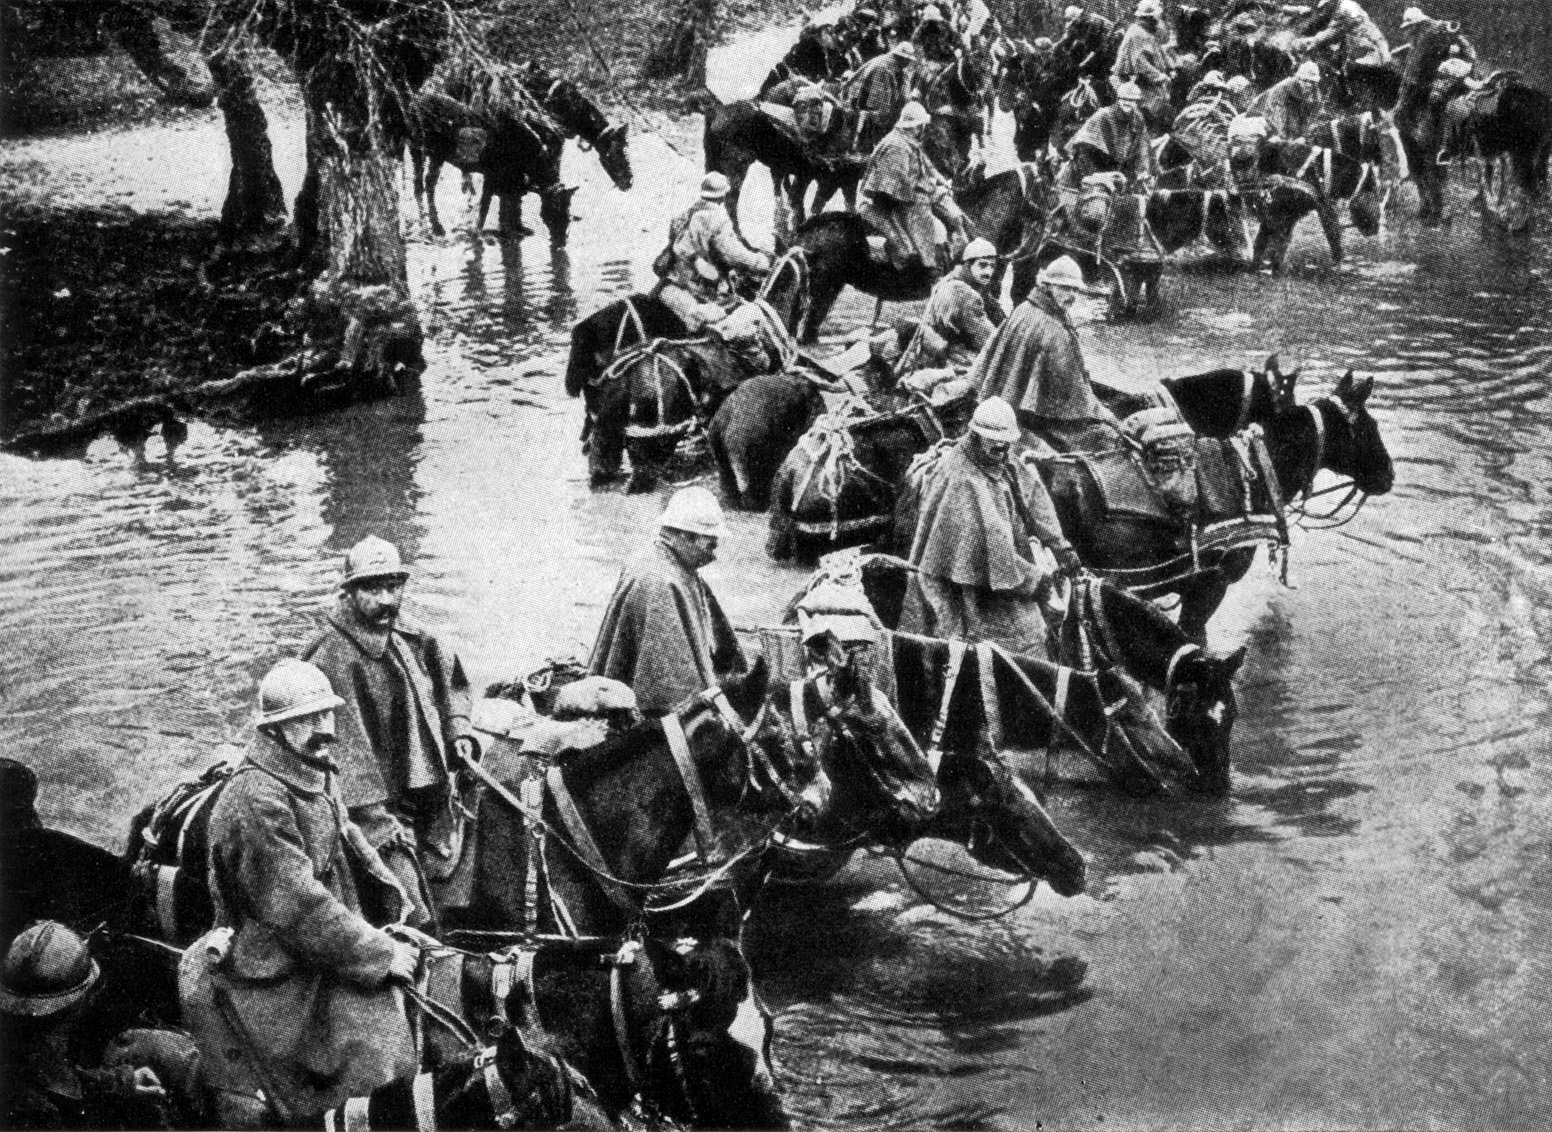 french_train_horses_resting_in_a_river_on_their_way_to_verdun.jpg